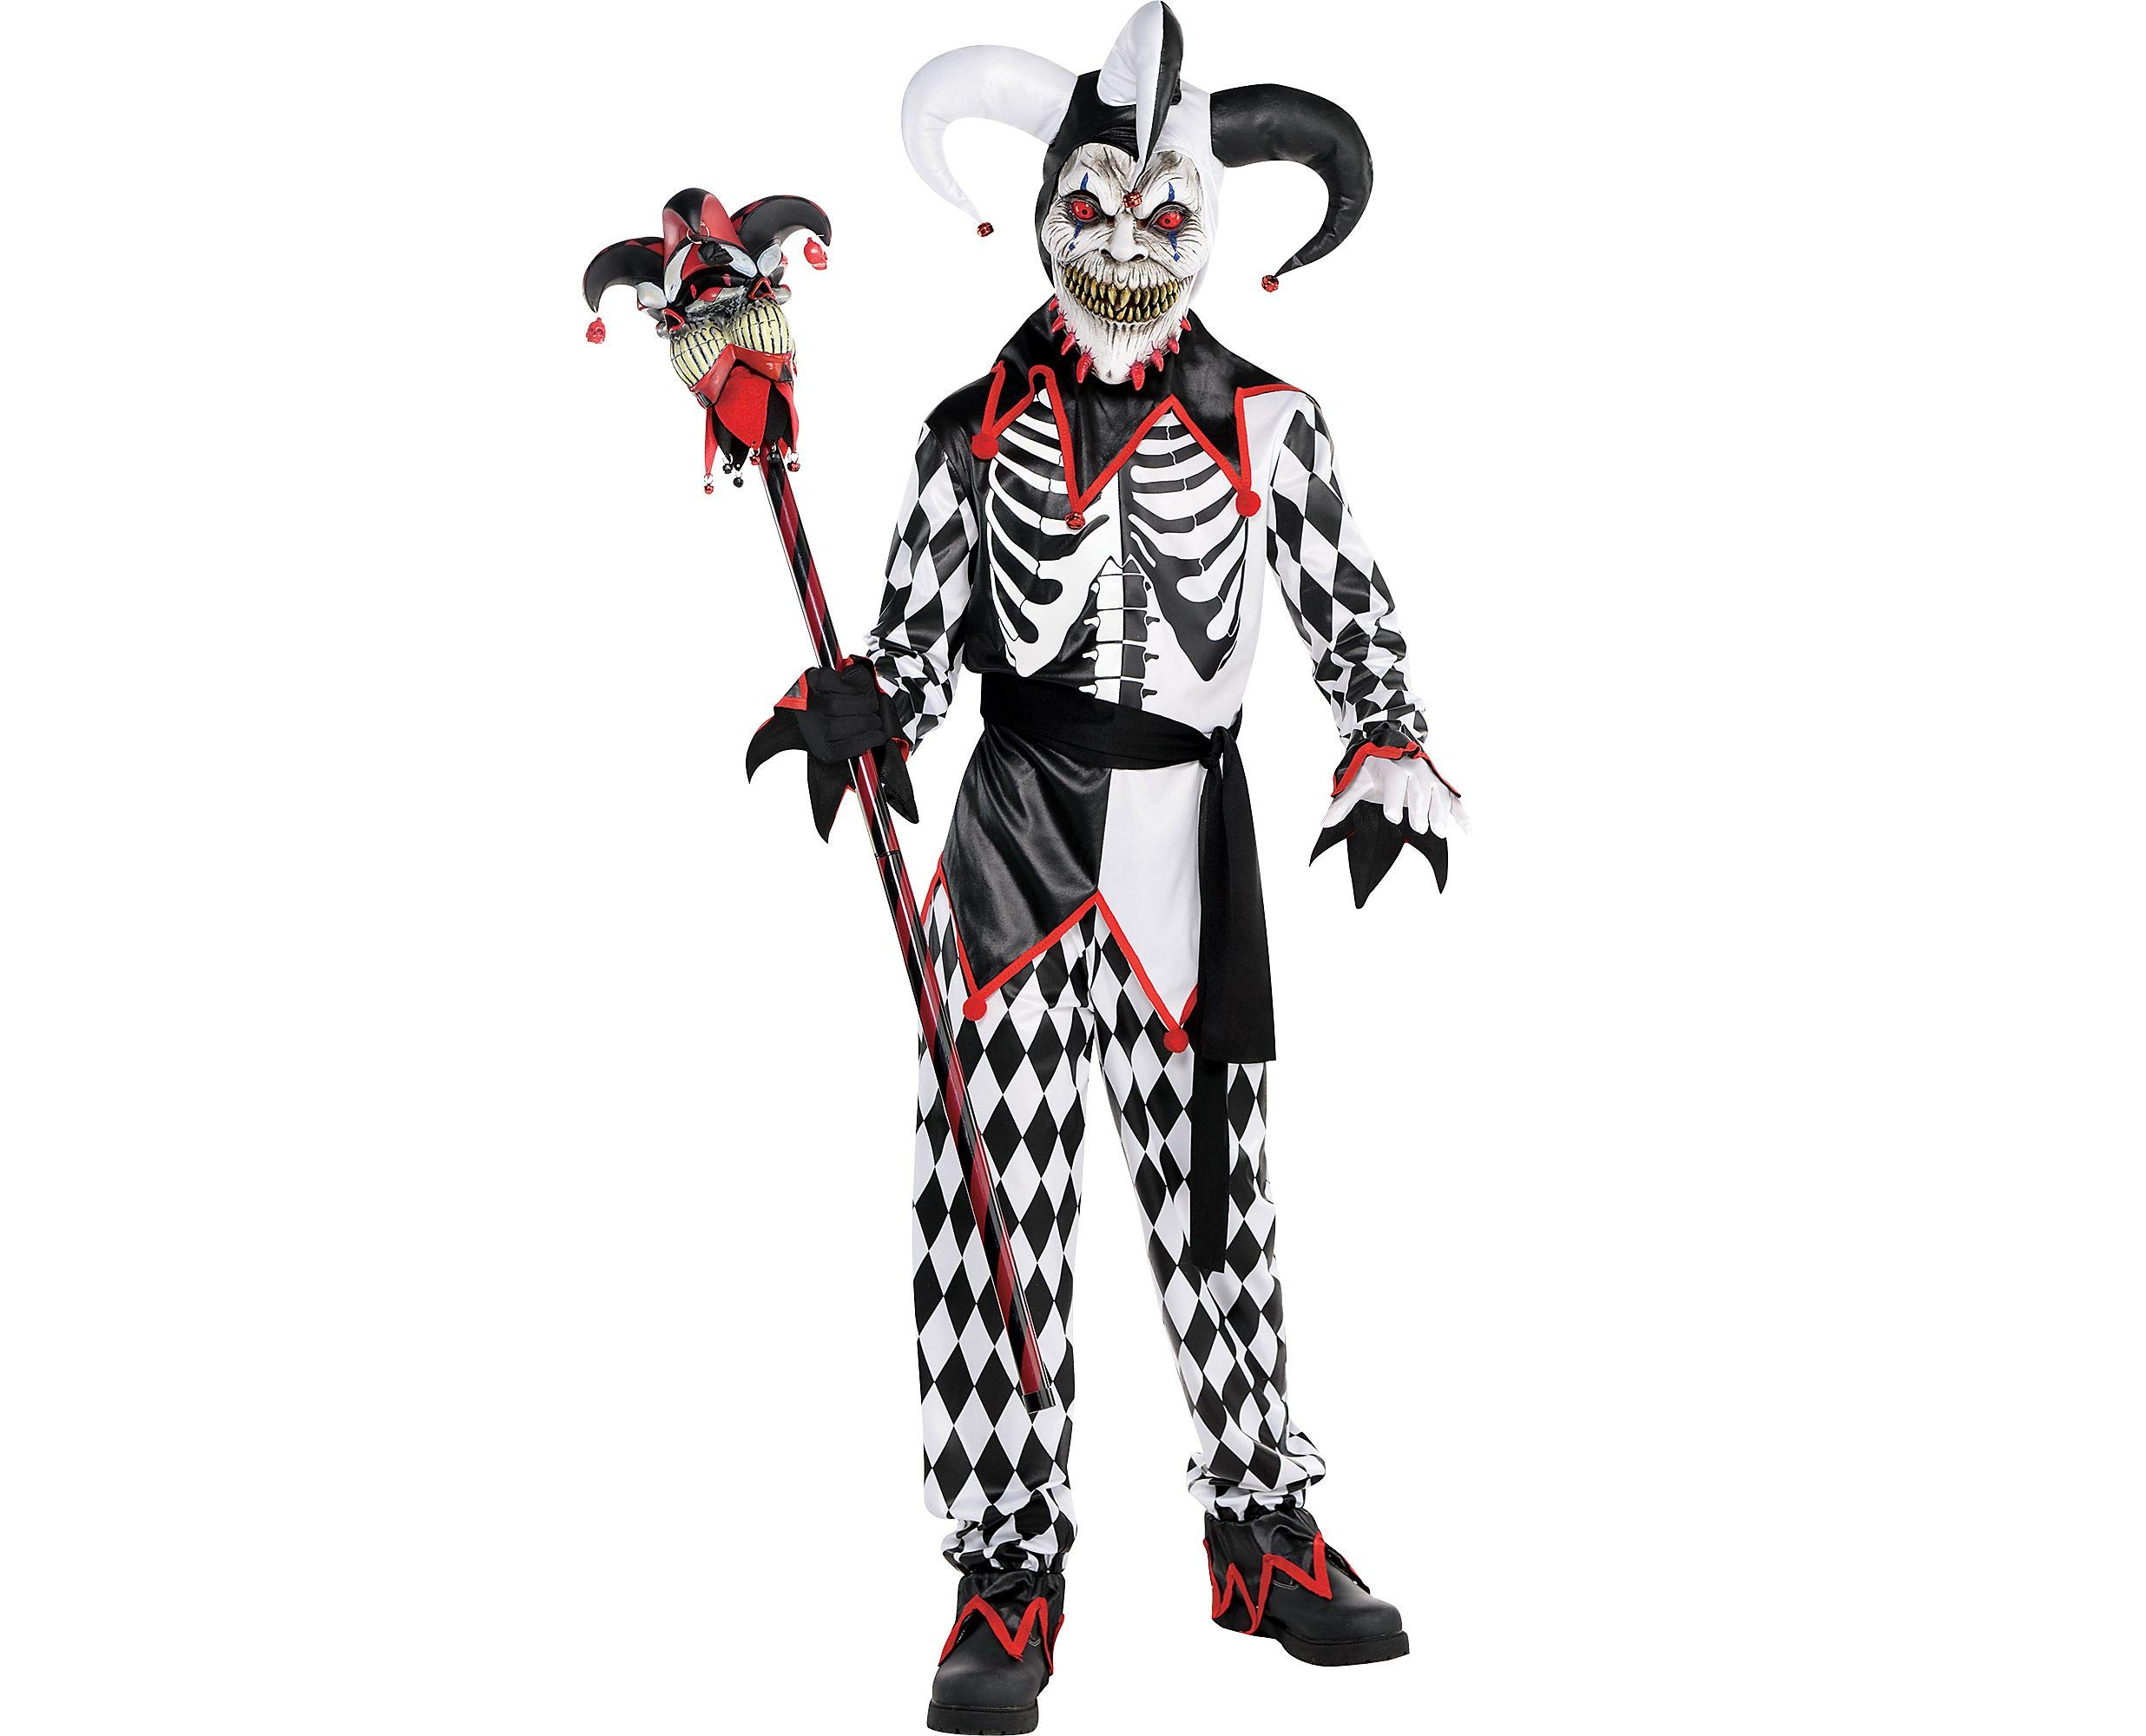 AMSCAN Sinister Jester Halloween Costume for Boys, Large, with Included Accessories